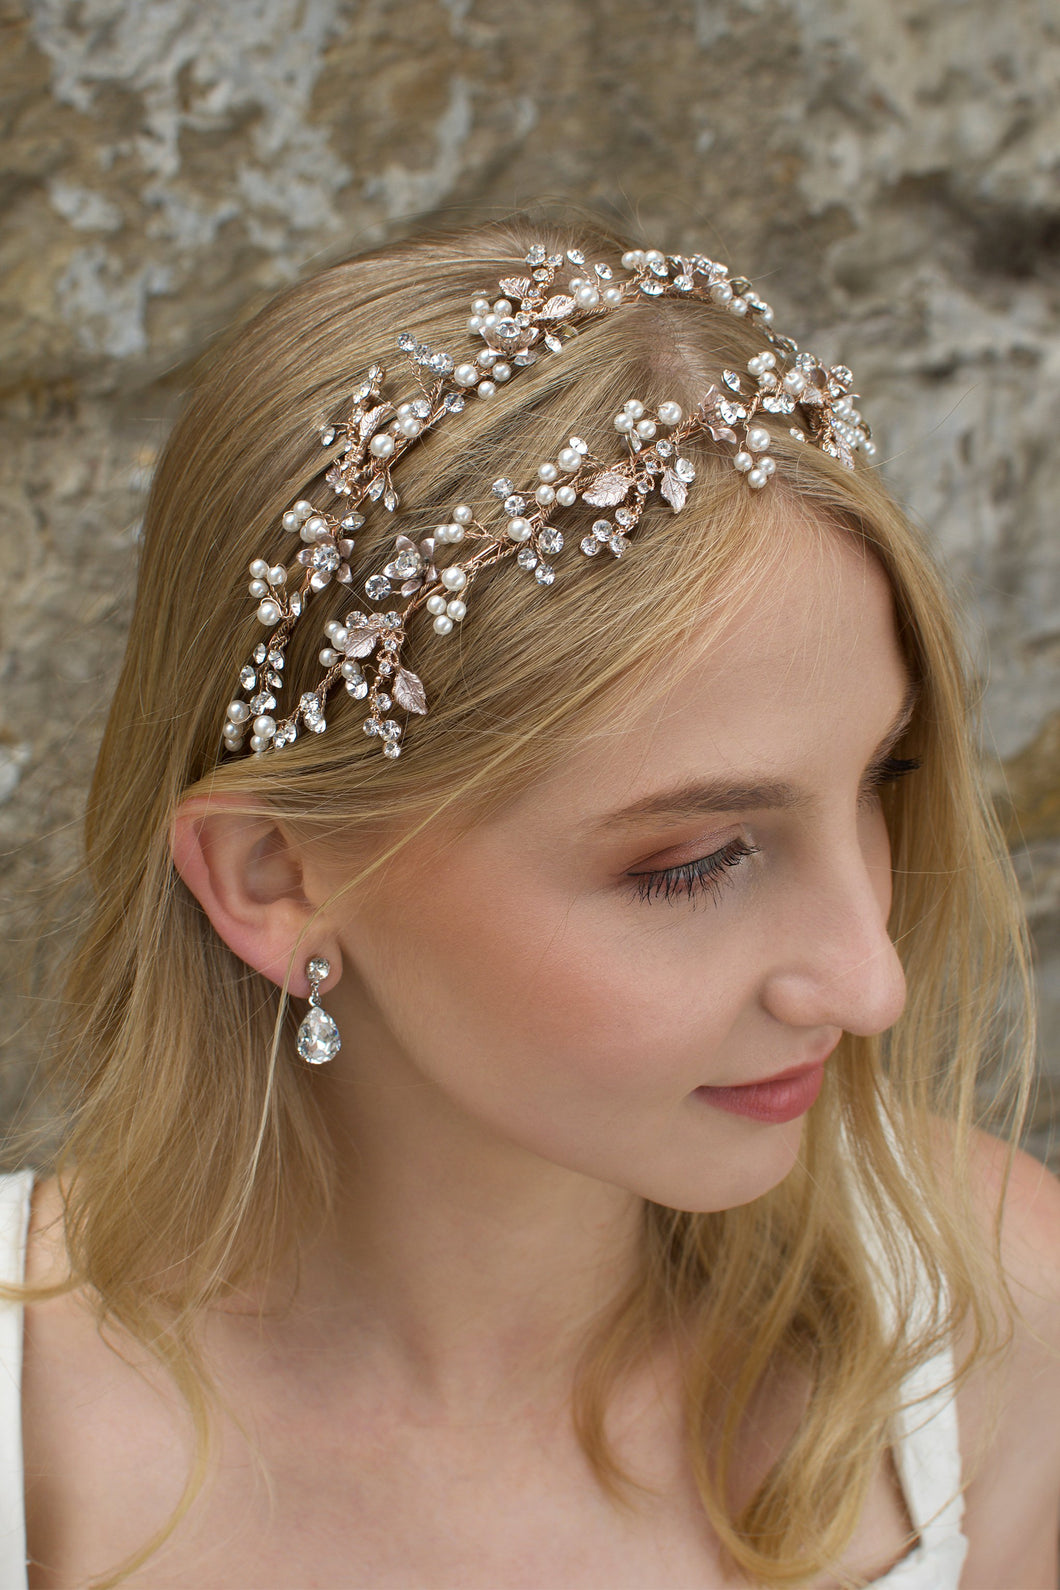 Double row headband in rose gold worn by a blonde model with a stone wall background